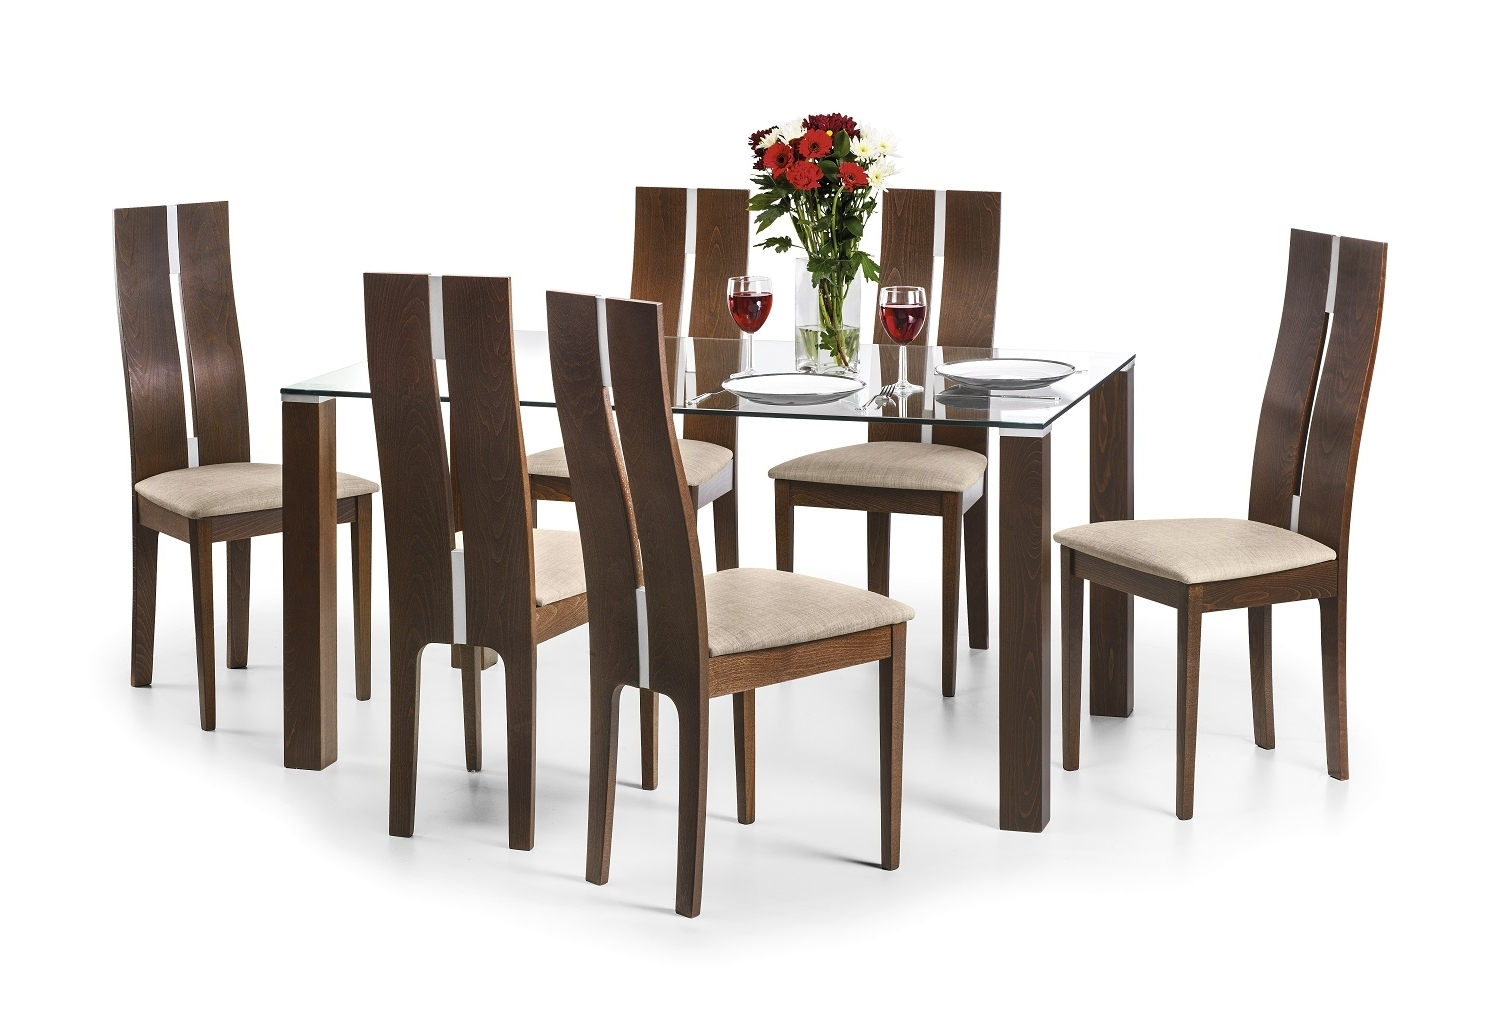 Kayman 150Cm Walnut And Glass Dining Table And Chairs Inside Most Current Glass And Oak Dining Tables And Chairs (View 13 of 25)